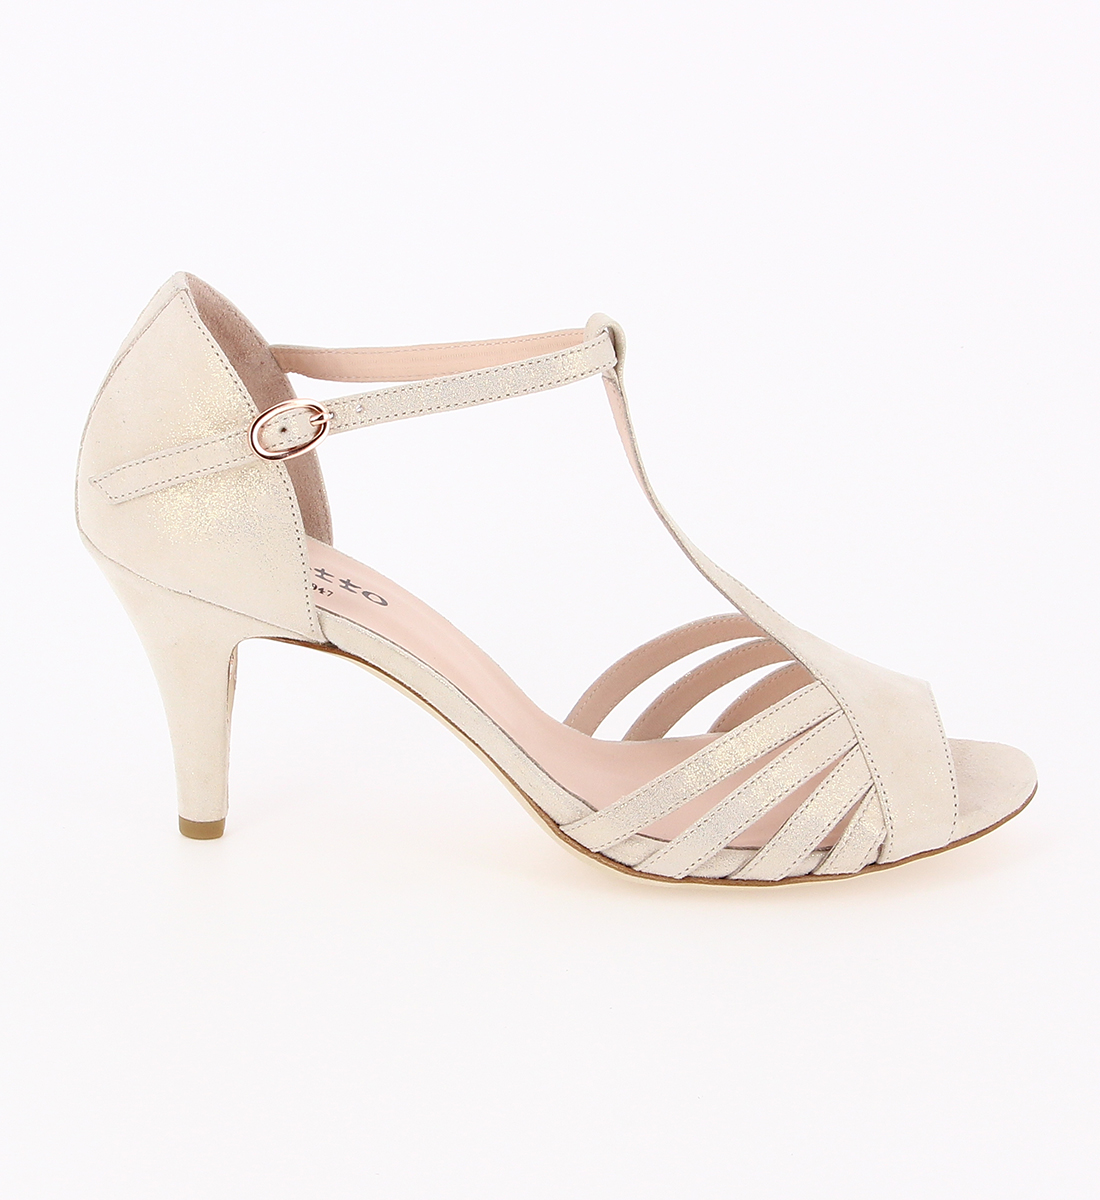 Chaussures repetto femme salome